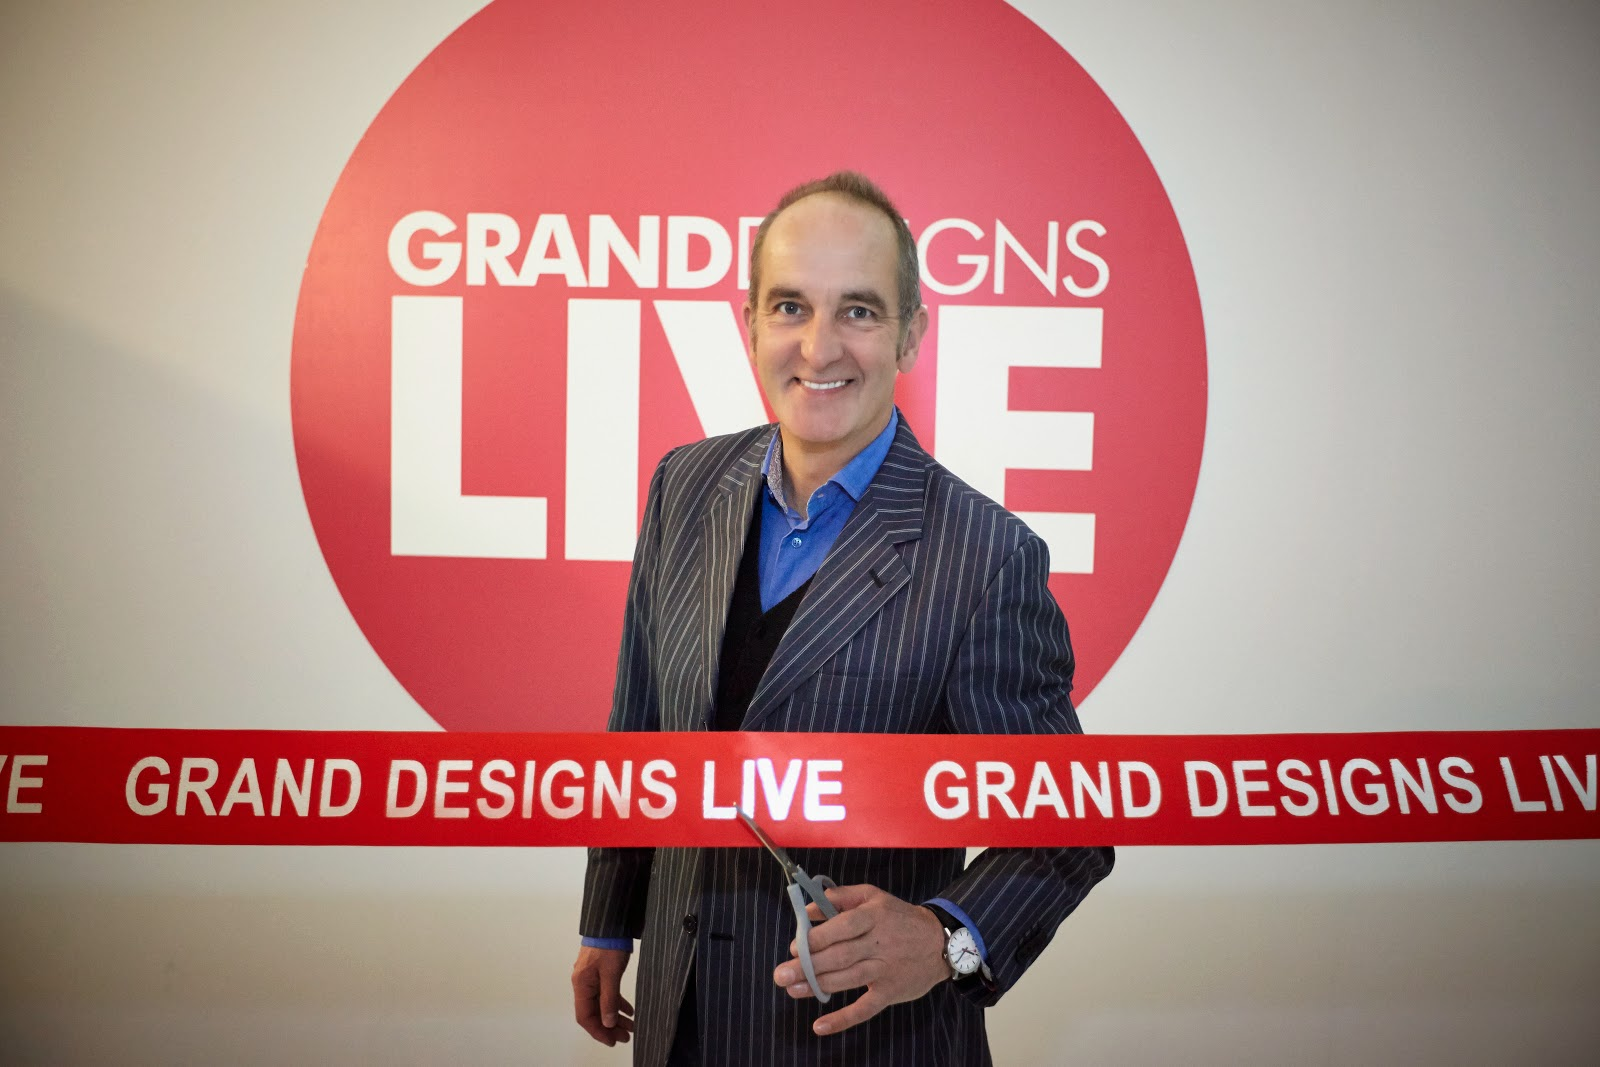 , Win Tickets to Grand Designs Live in London Excel 2 – 9 May 2015